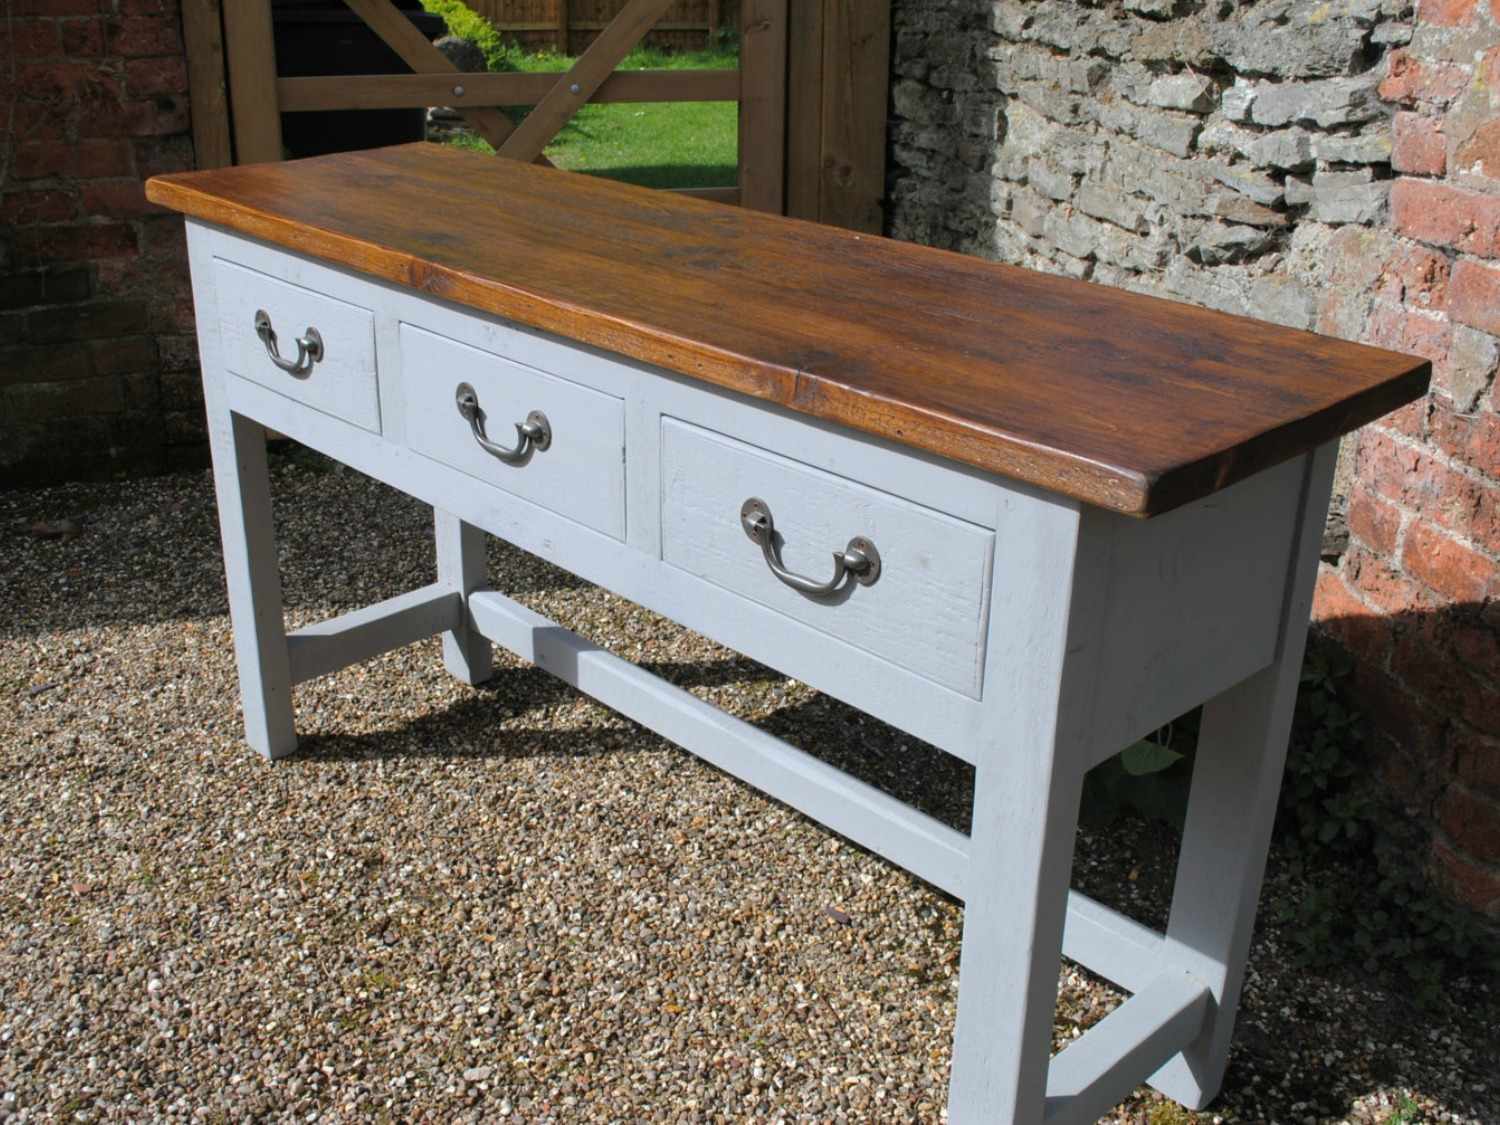 Bespoke Handmade Serving Sideboard - Any Design or Specification